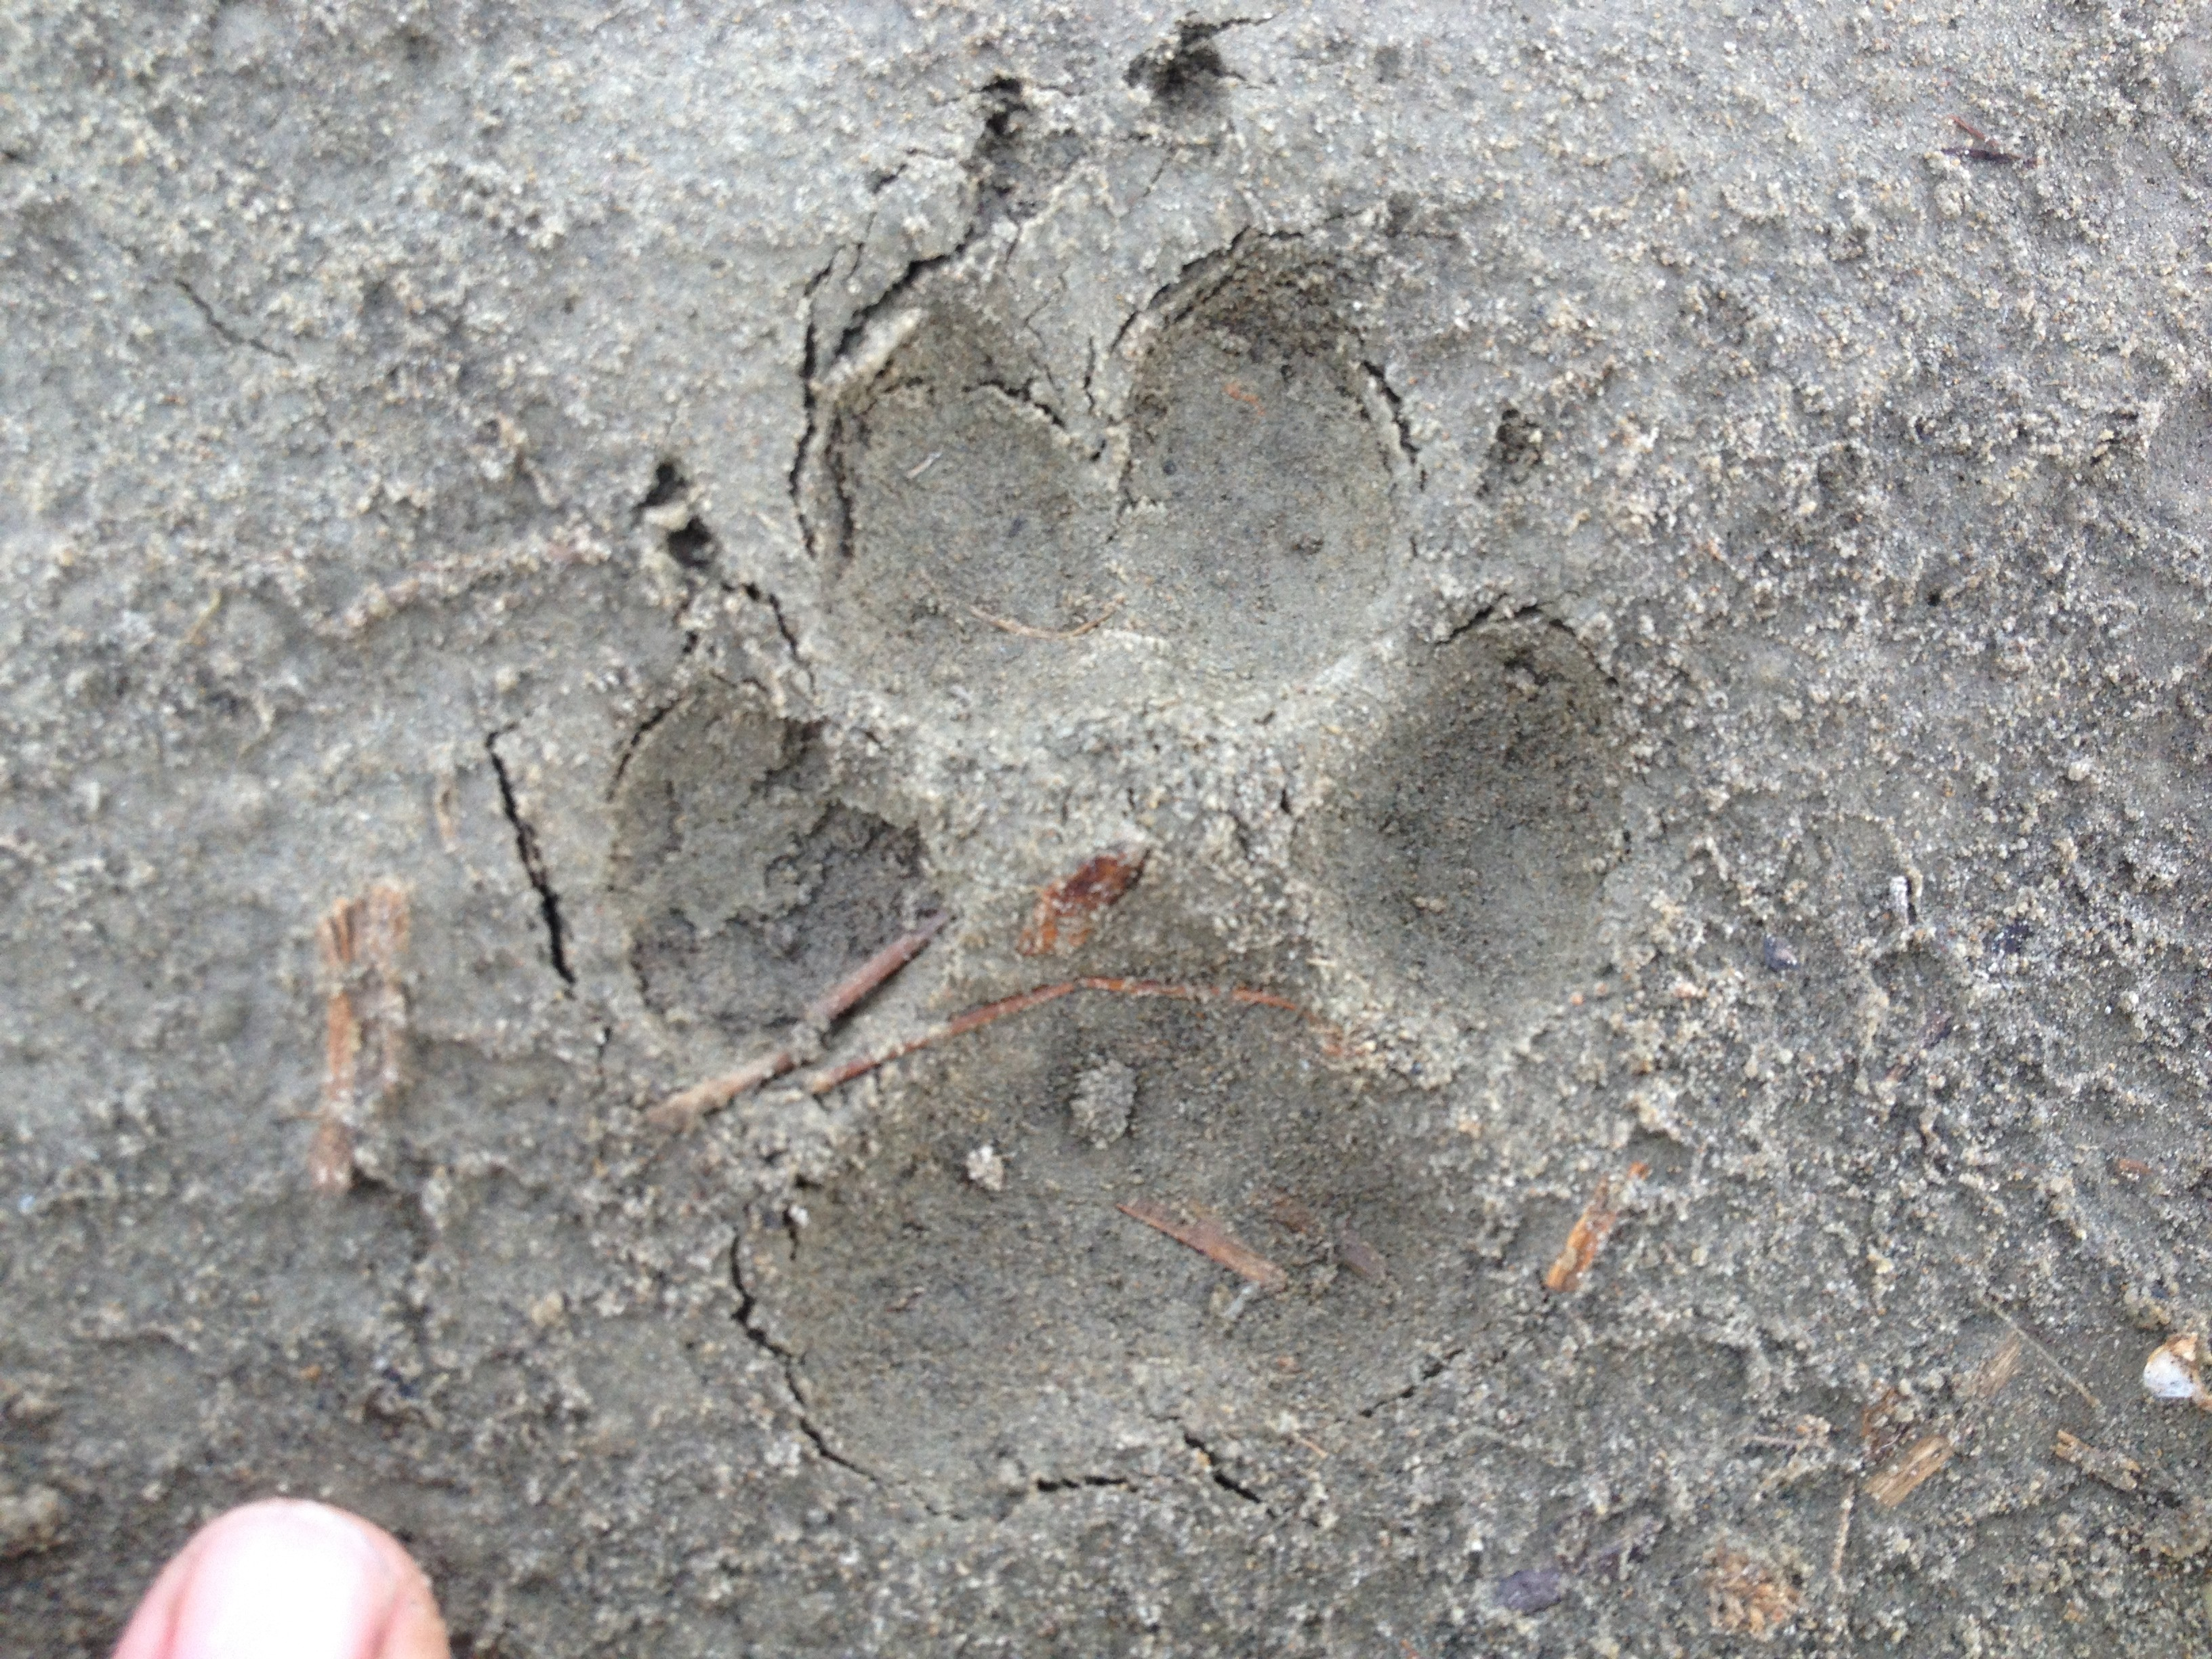 At first, all I could think about was if this was a mountain lion track. I knew it was too small, but my mind was trying to justify it as such. Then, I took out my survival guide and saw that the nail prints indicated something different. Probably just a coyote or a desert fox.